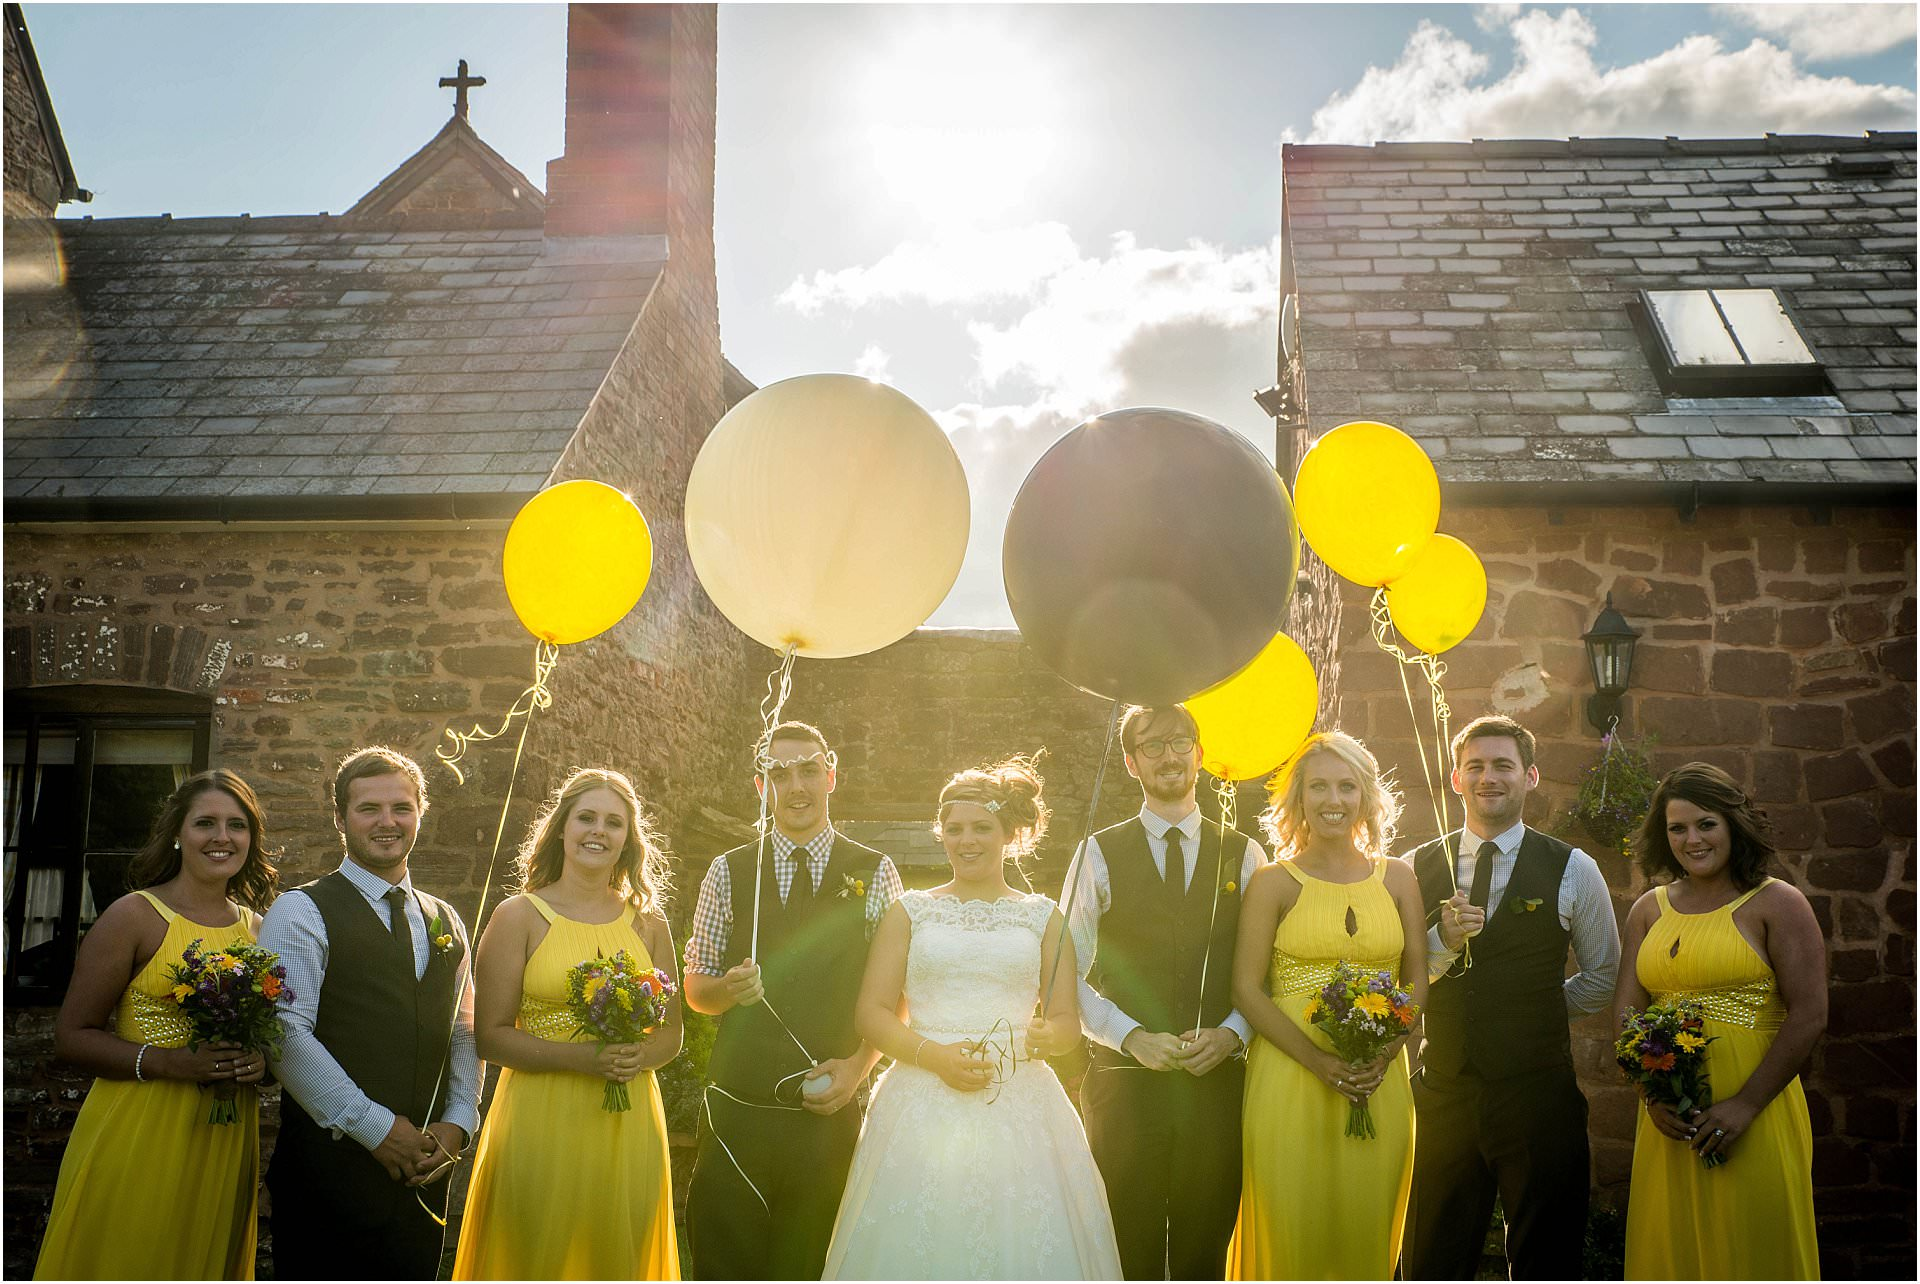 Flanesford Priory Wedding Venue Goodrich Herefordshire